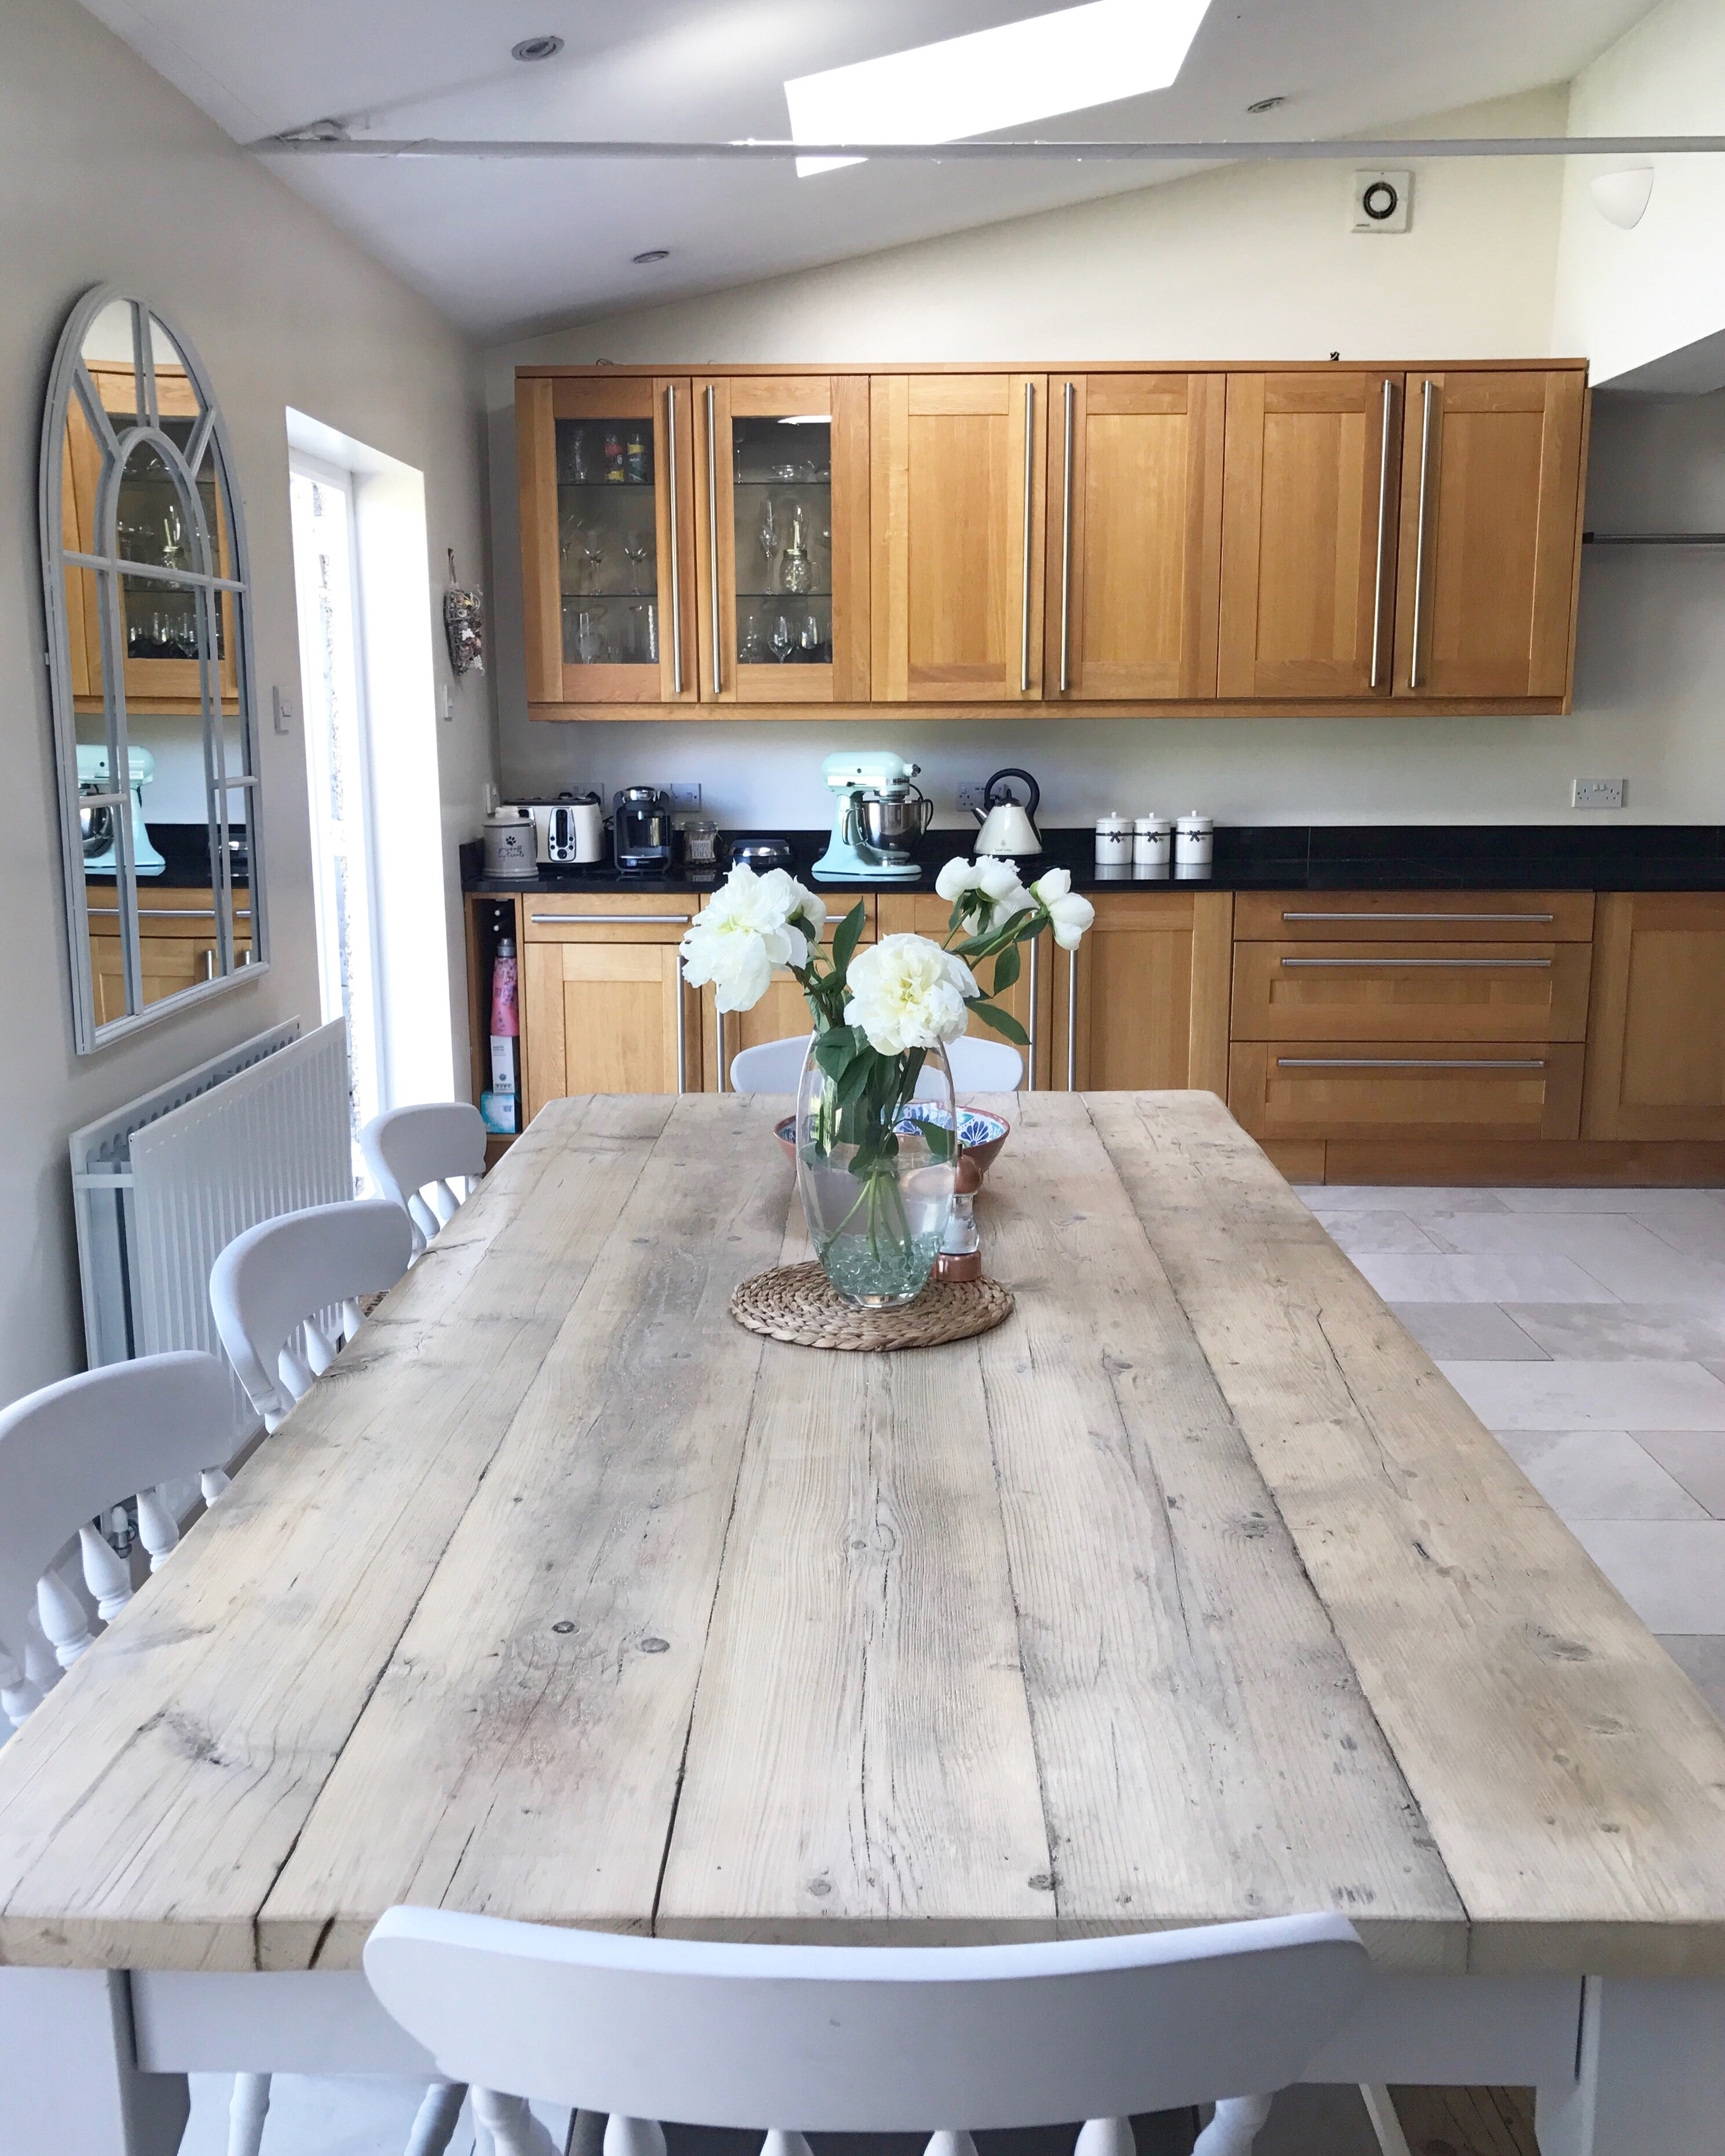 Lime Washed Farmhouse Tables And Benches Bespoke Sizes: Reclaimed Farmhouse Tables Country Kitchen Tables Benches